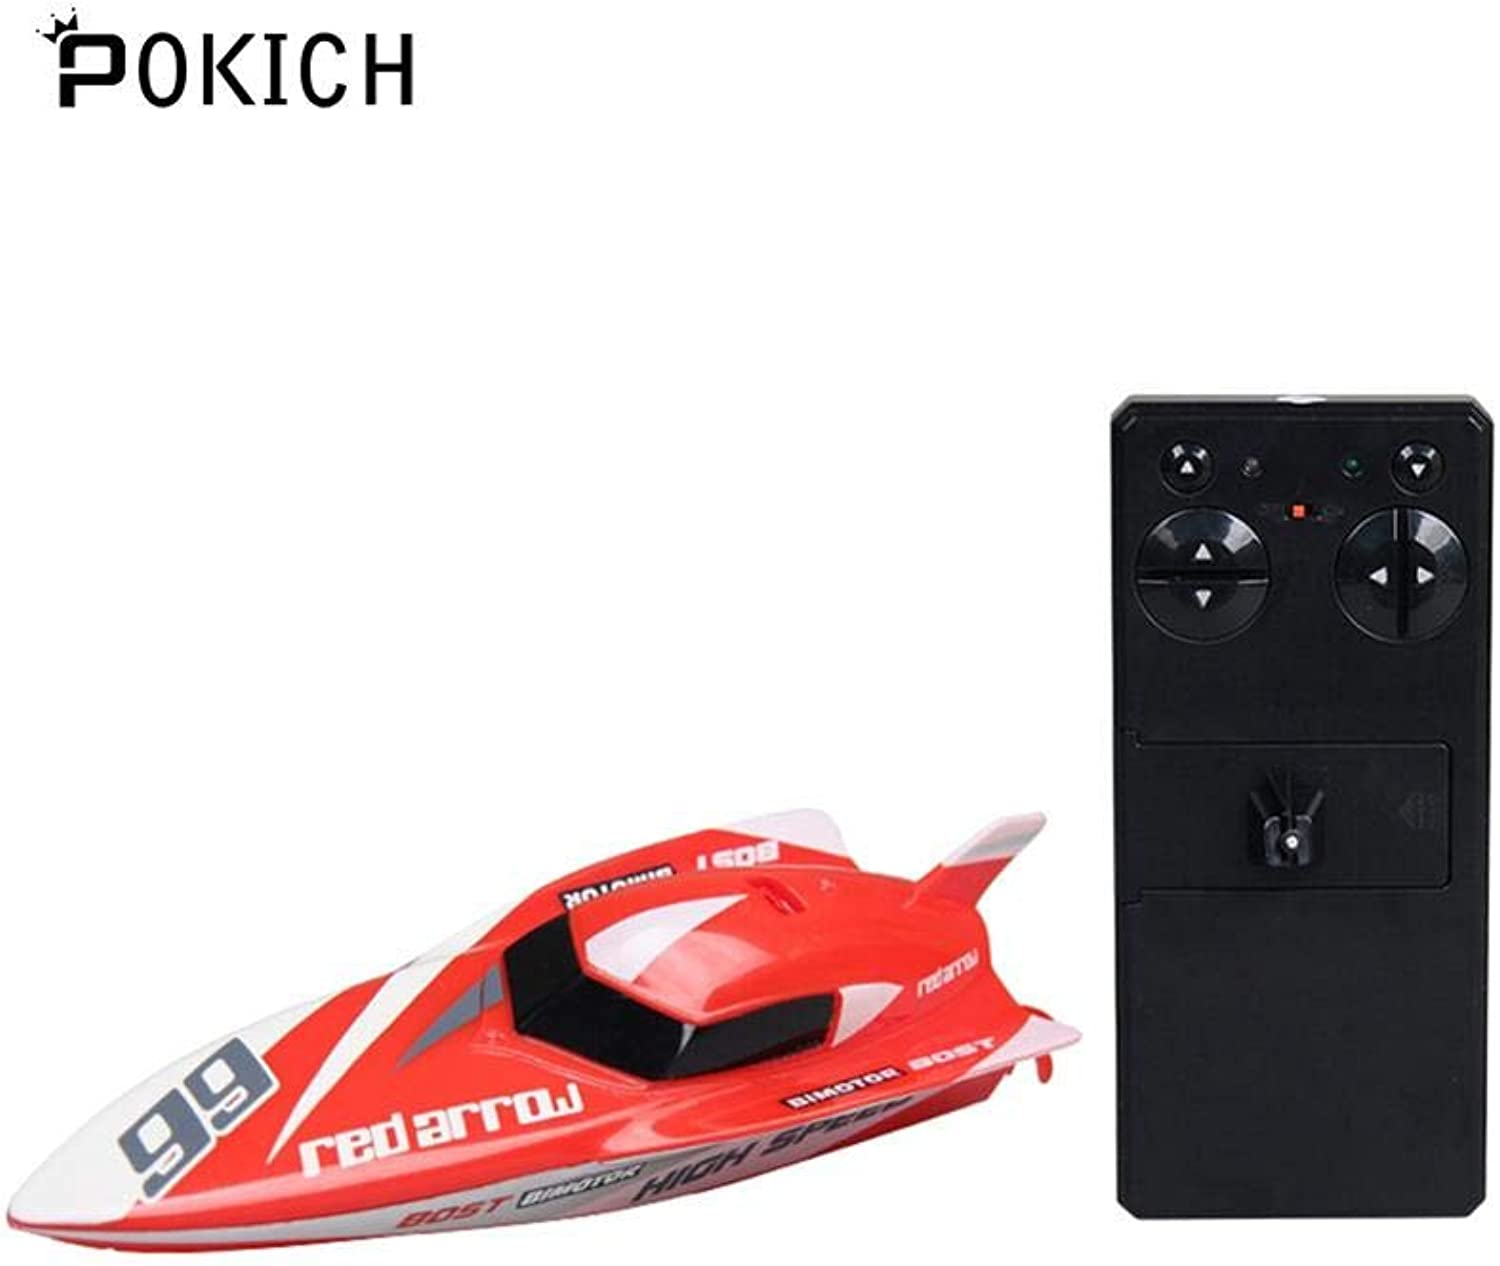 Generic Pokich Mini Remote Control Racing Boat 2.4G 4CH Rechargable RC Ship Electric Toy Waterproof Speedboat Red